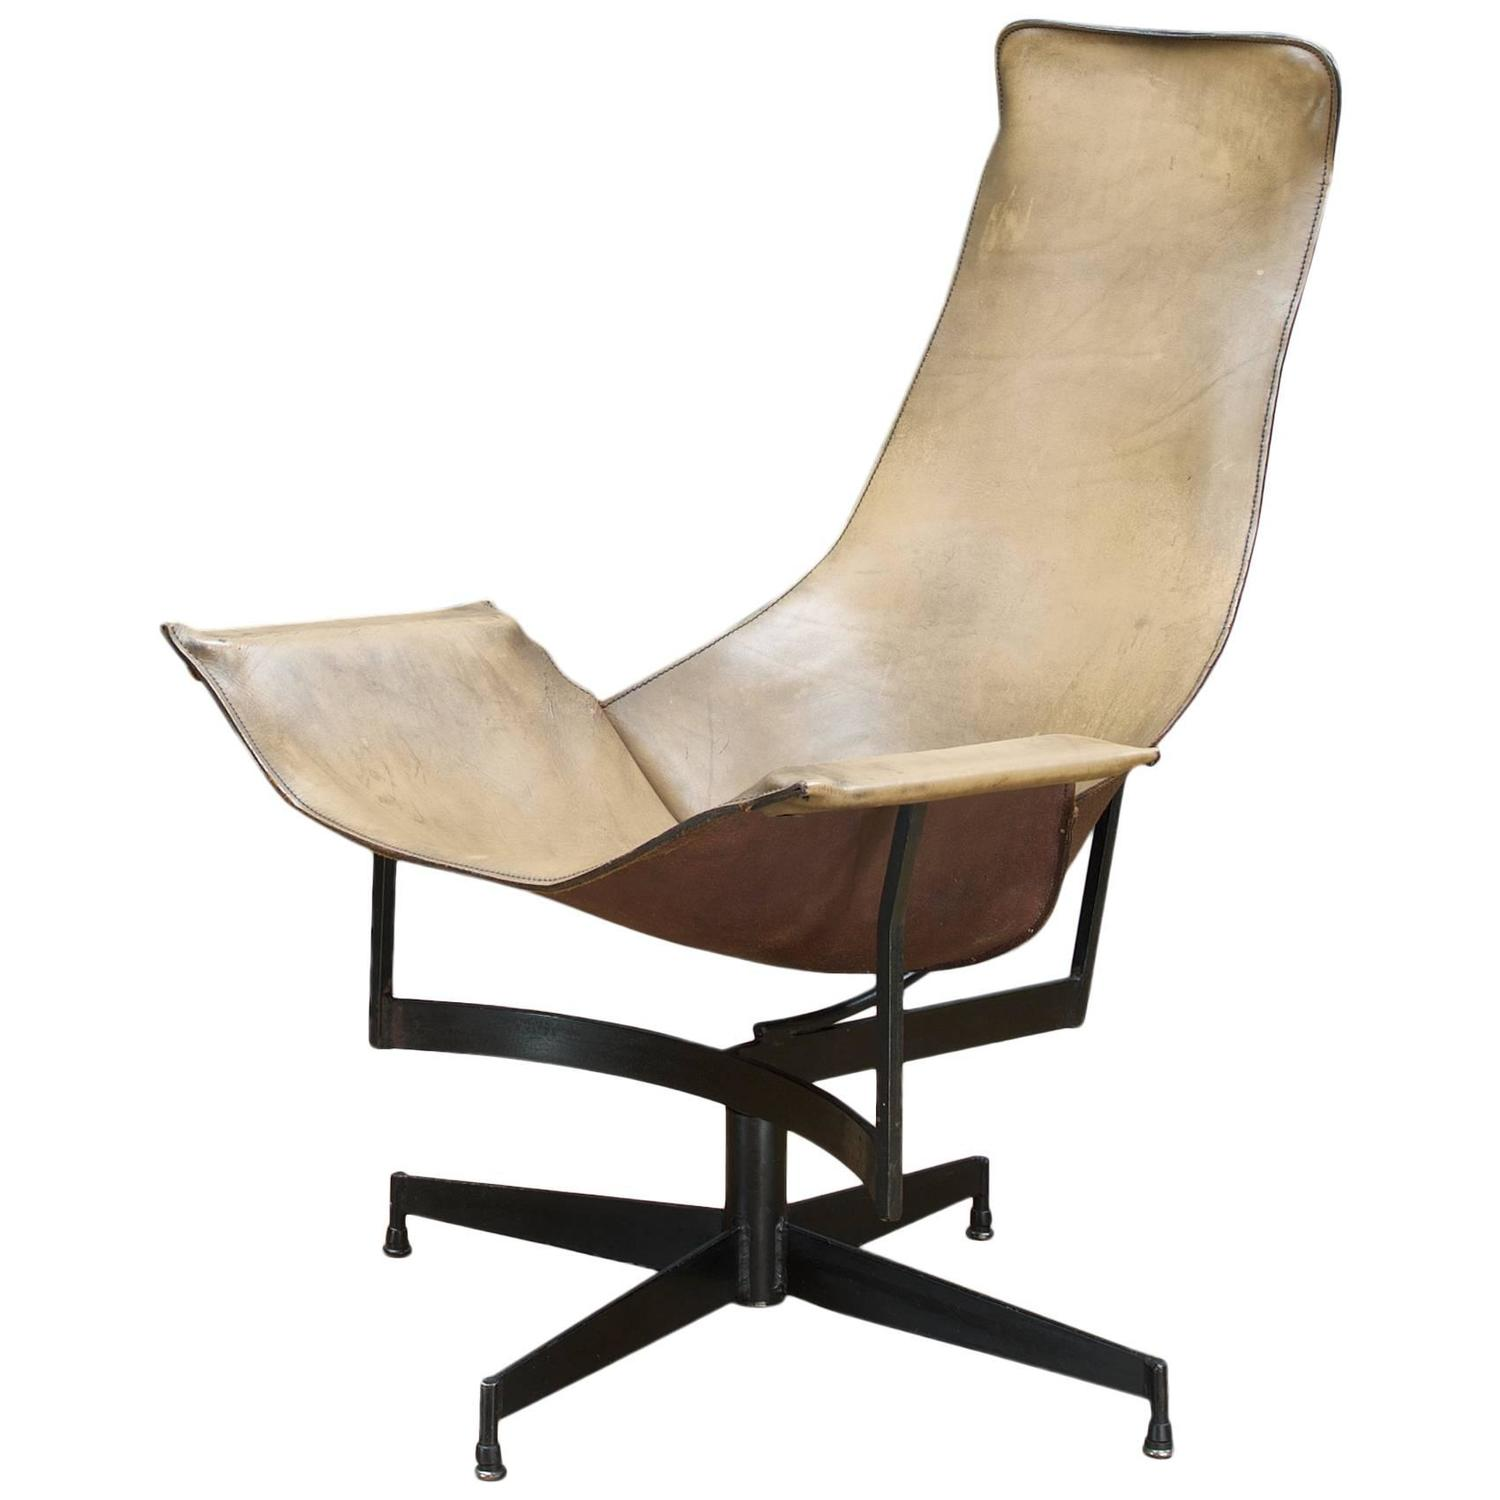 Leathercrafters NYC Swivel K Leather Sling Lounge Chair at 1stdibs